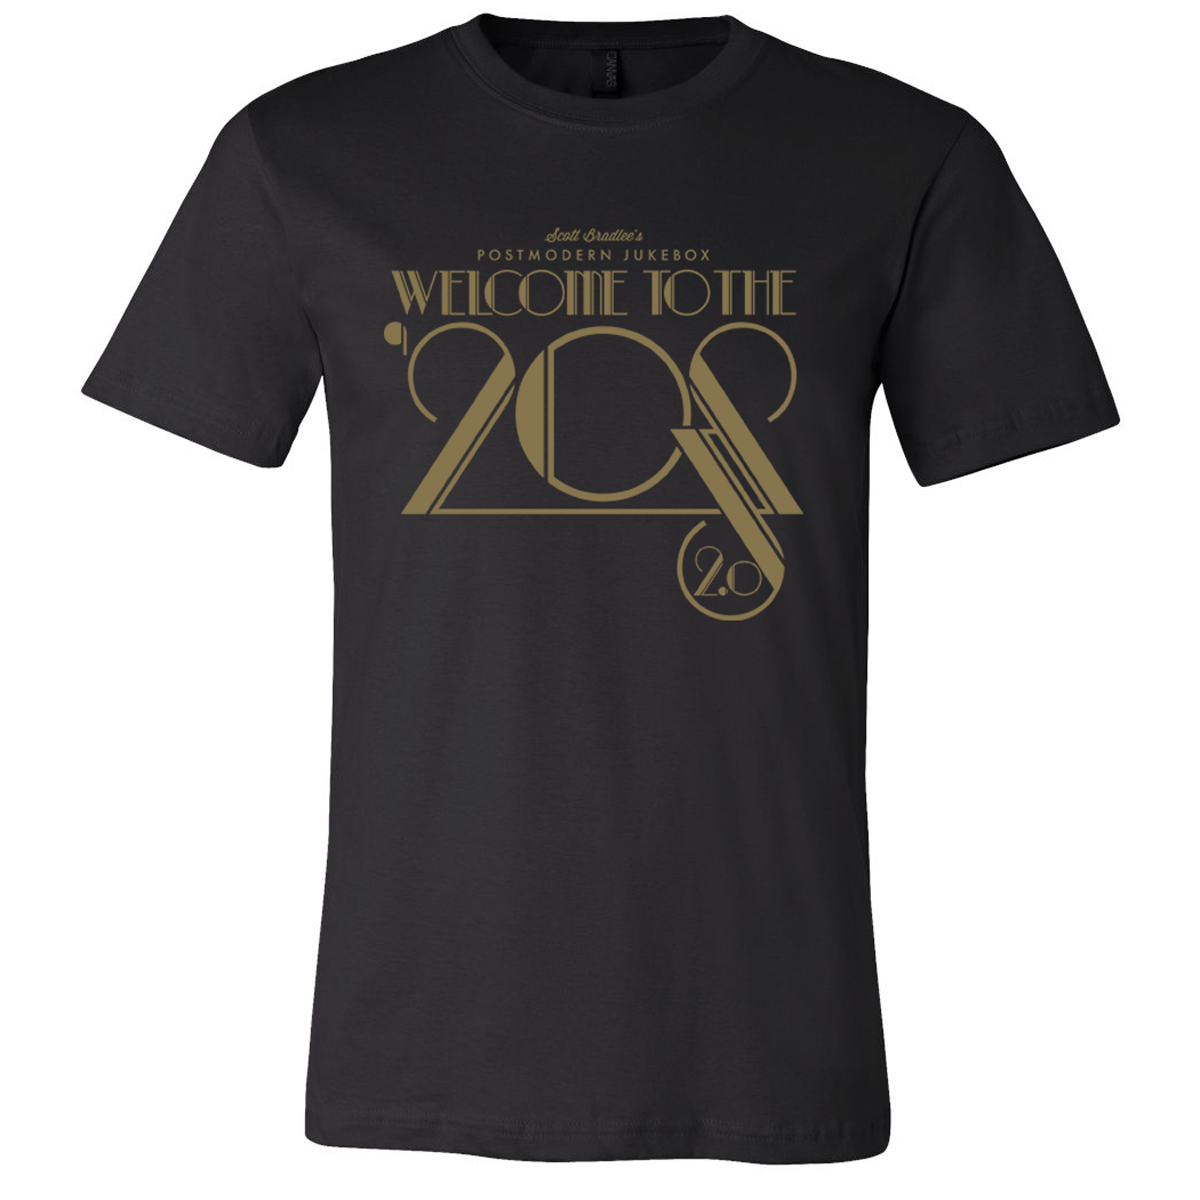 Welcome To The 20's Tee